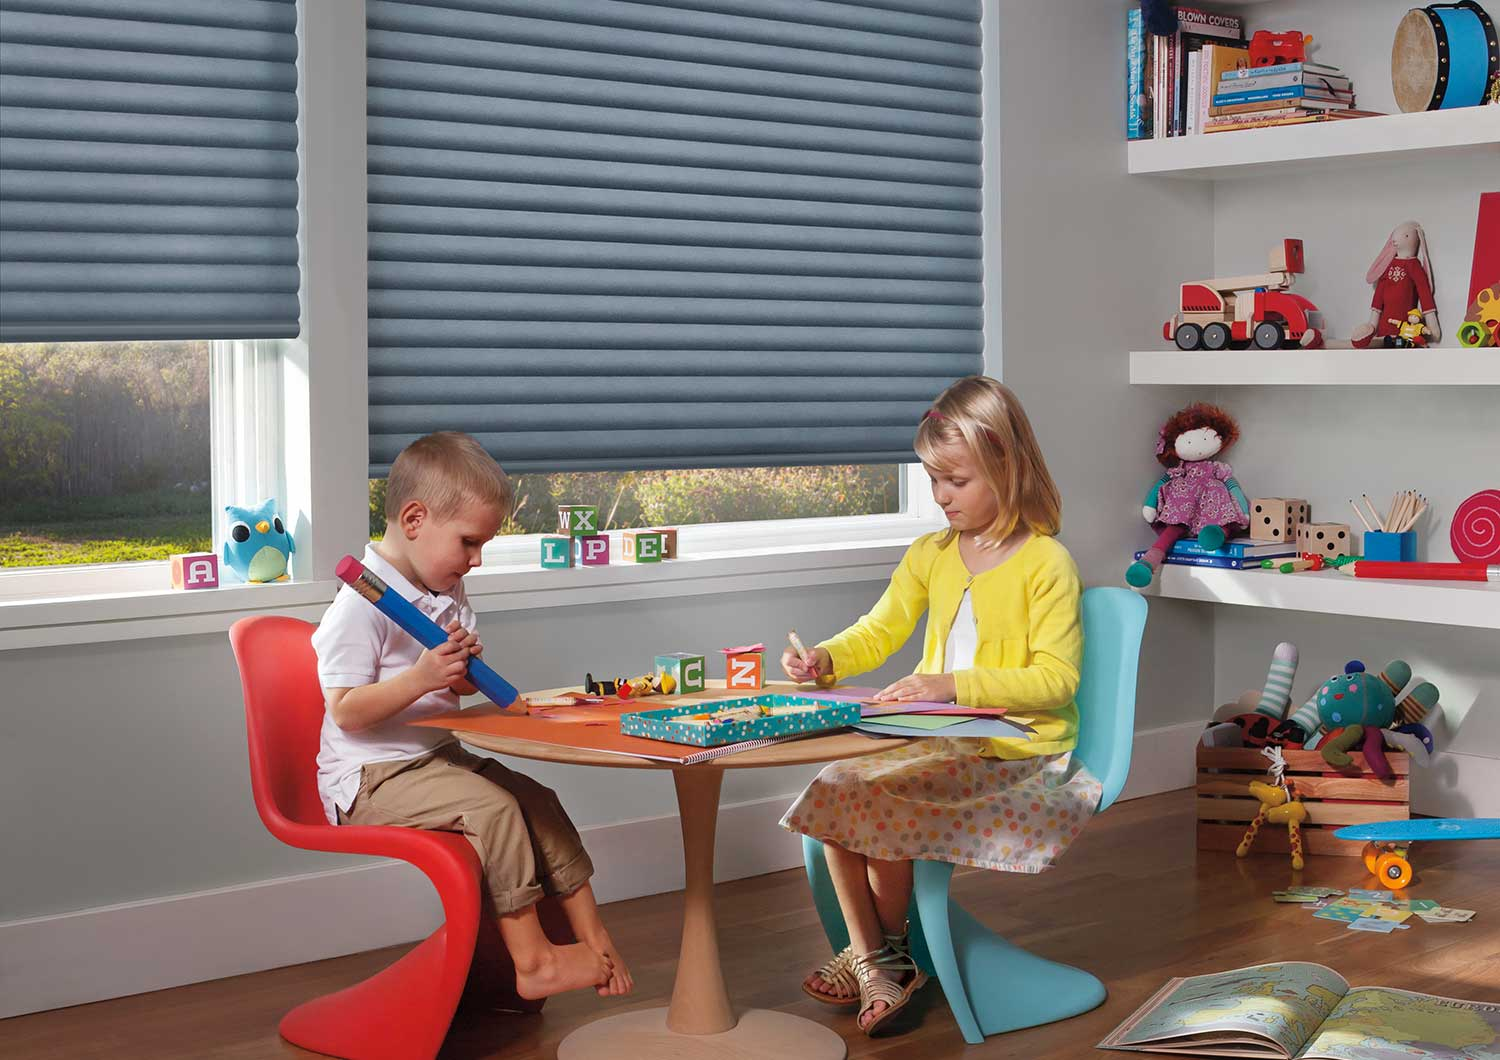 Children safely playing around Sonnette Cellular Roller Shades.